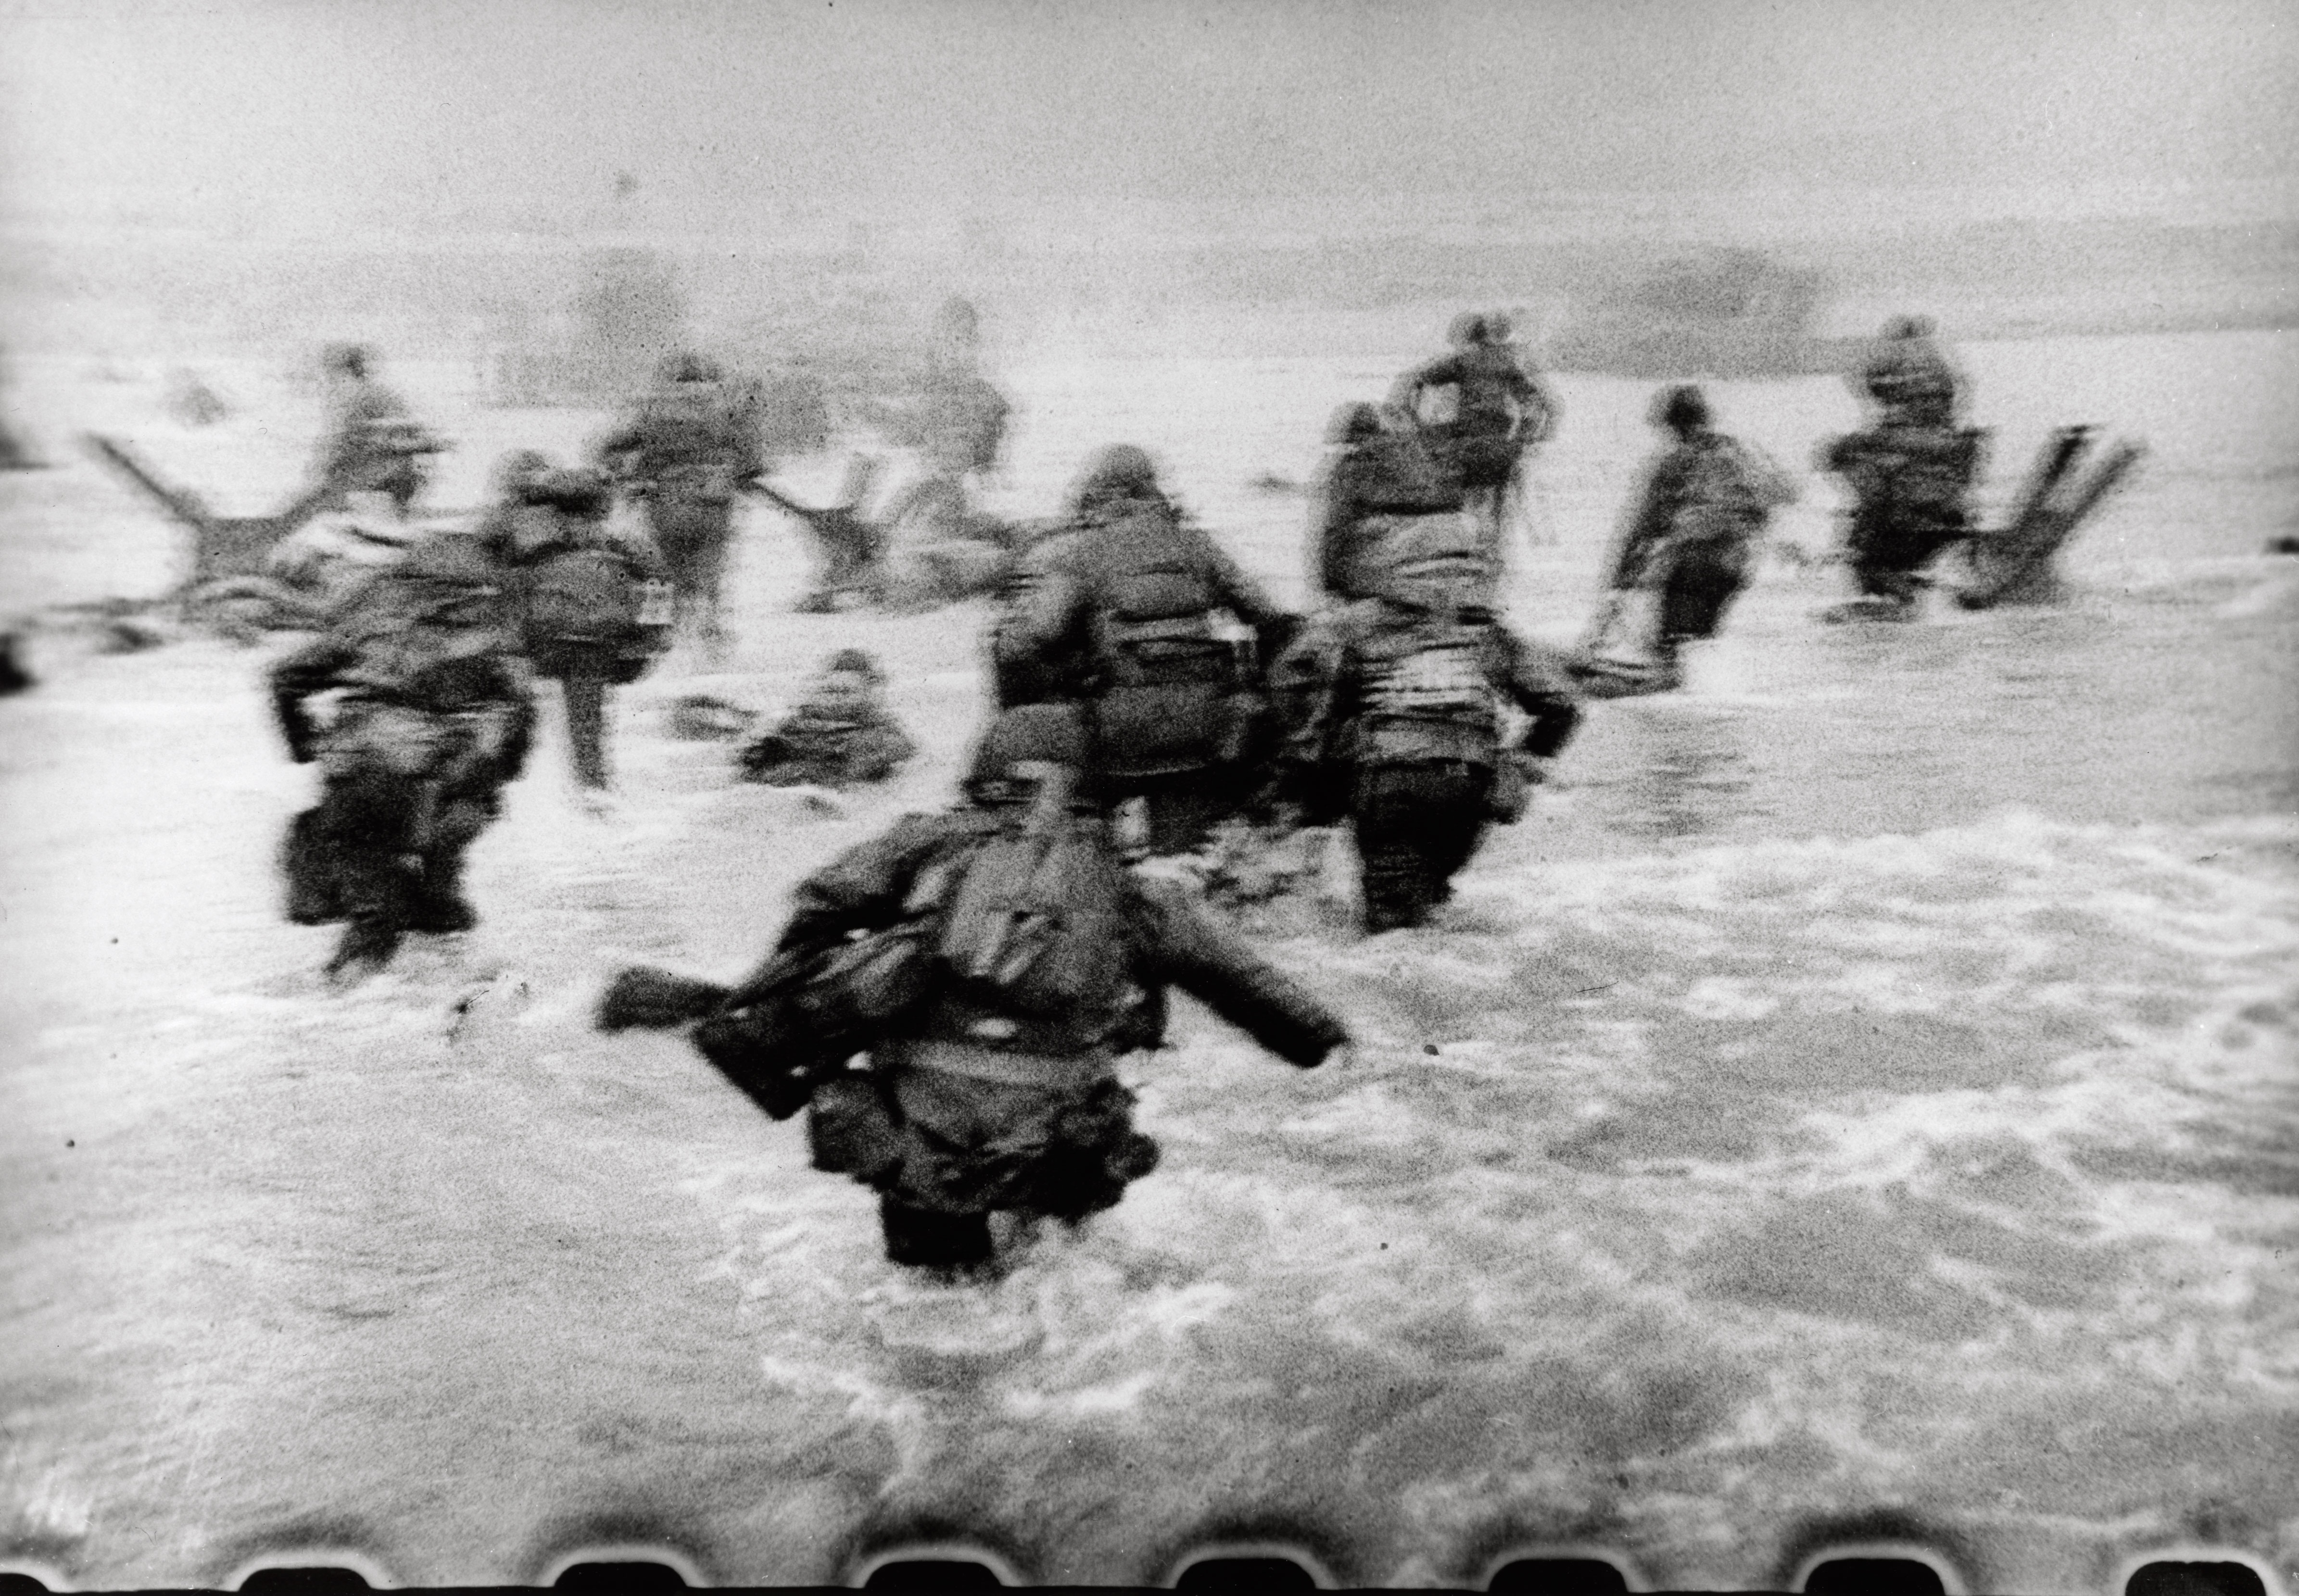 Robert Capa, [American troops landing on Omaha Beach, D-Day, Normandy, France], June 6 1944. © International Center of Photography/Magnum Photos